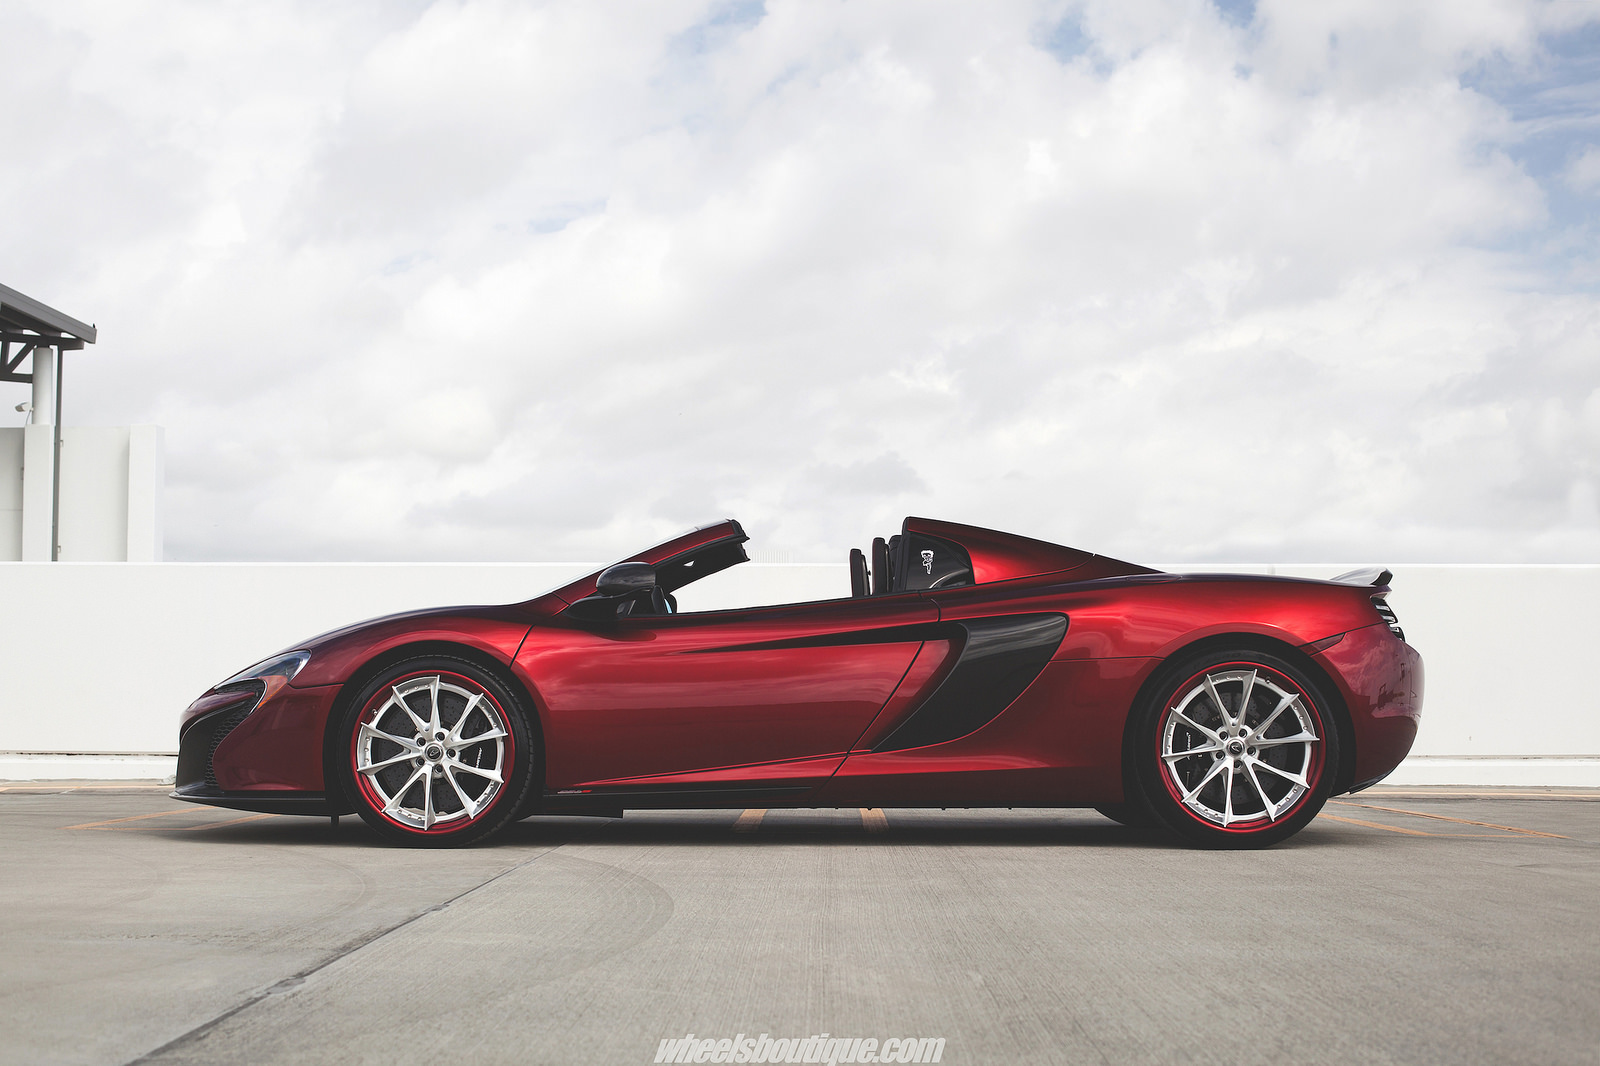 photo 5 McLaren 650S custom wheels HRE S204 20x9.0, ET , tire size 245/30 R20. 21x12.5 ET 325/25 R21